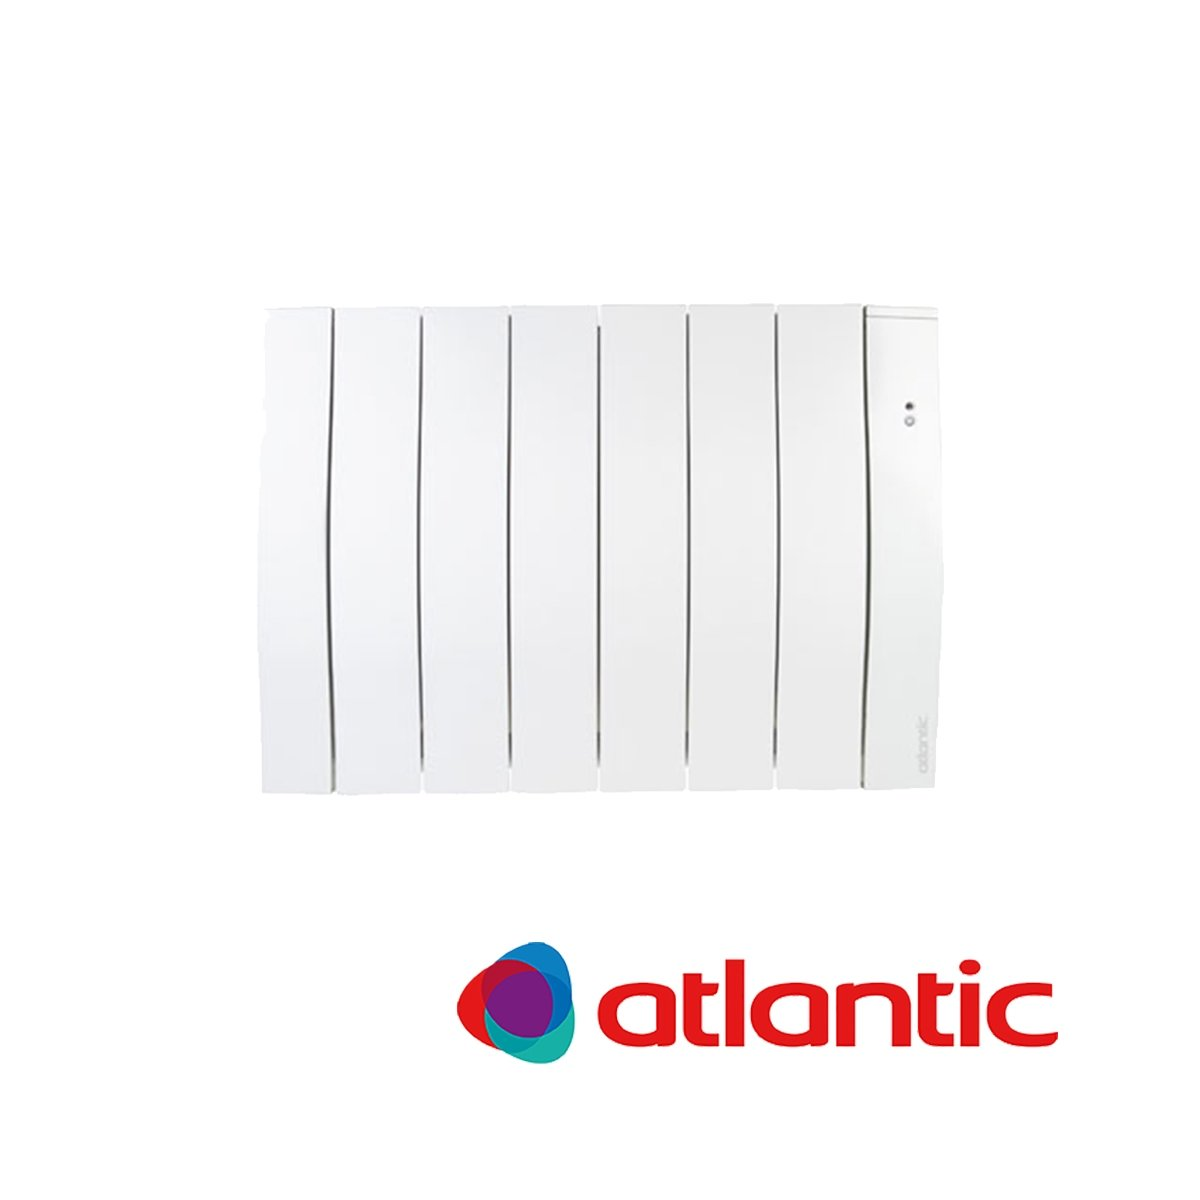 ATLANTIC - product - ATL-GALAPAGOS-PI-CONNECTE - Blanc, Horizontal, 750 W, new, 675,6: Amazon.es: Iluminación